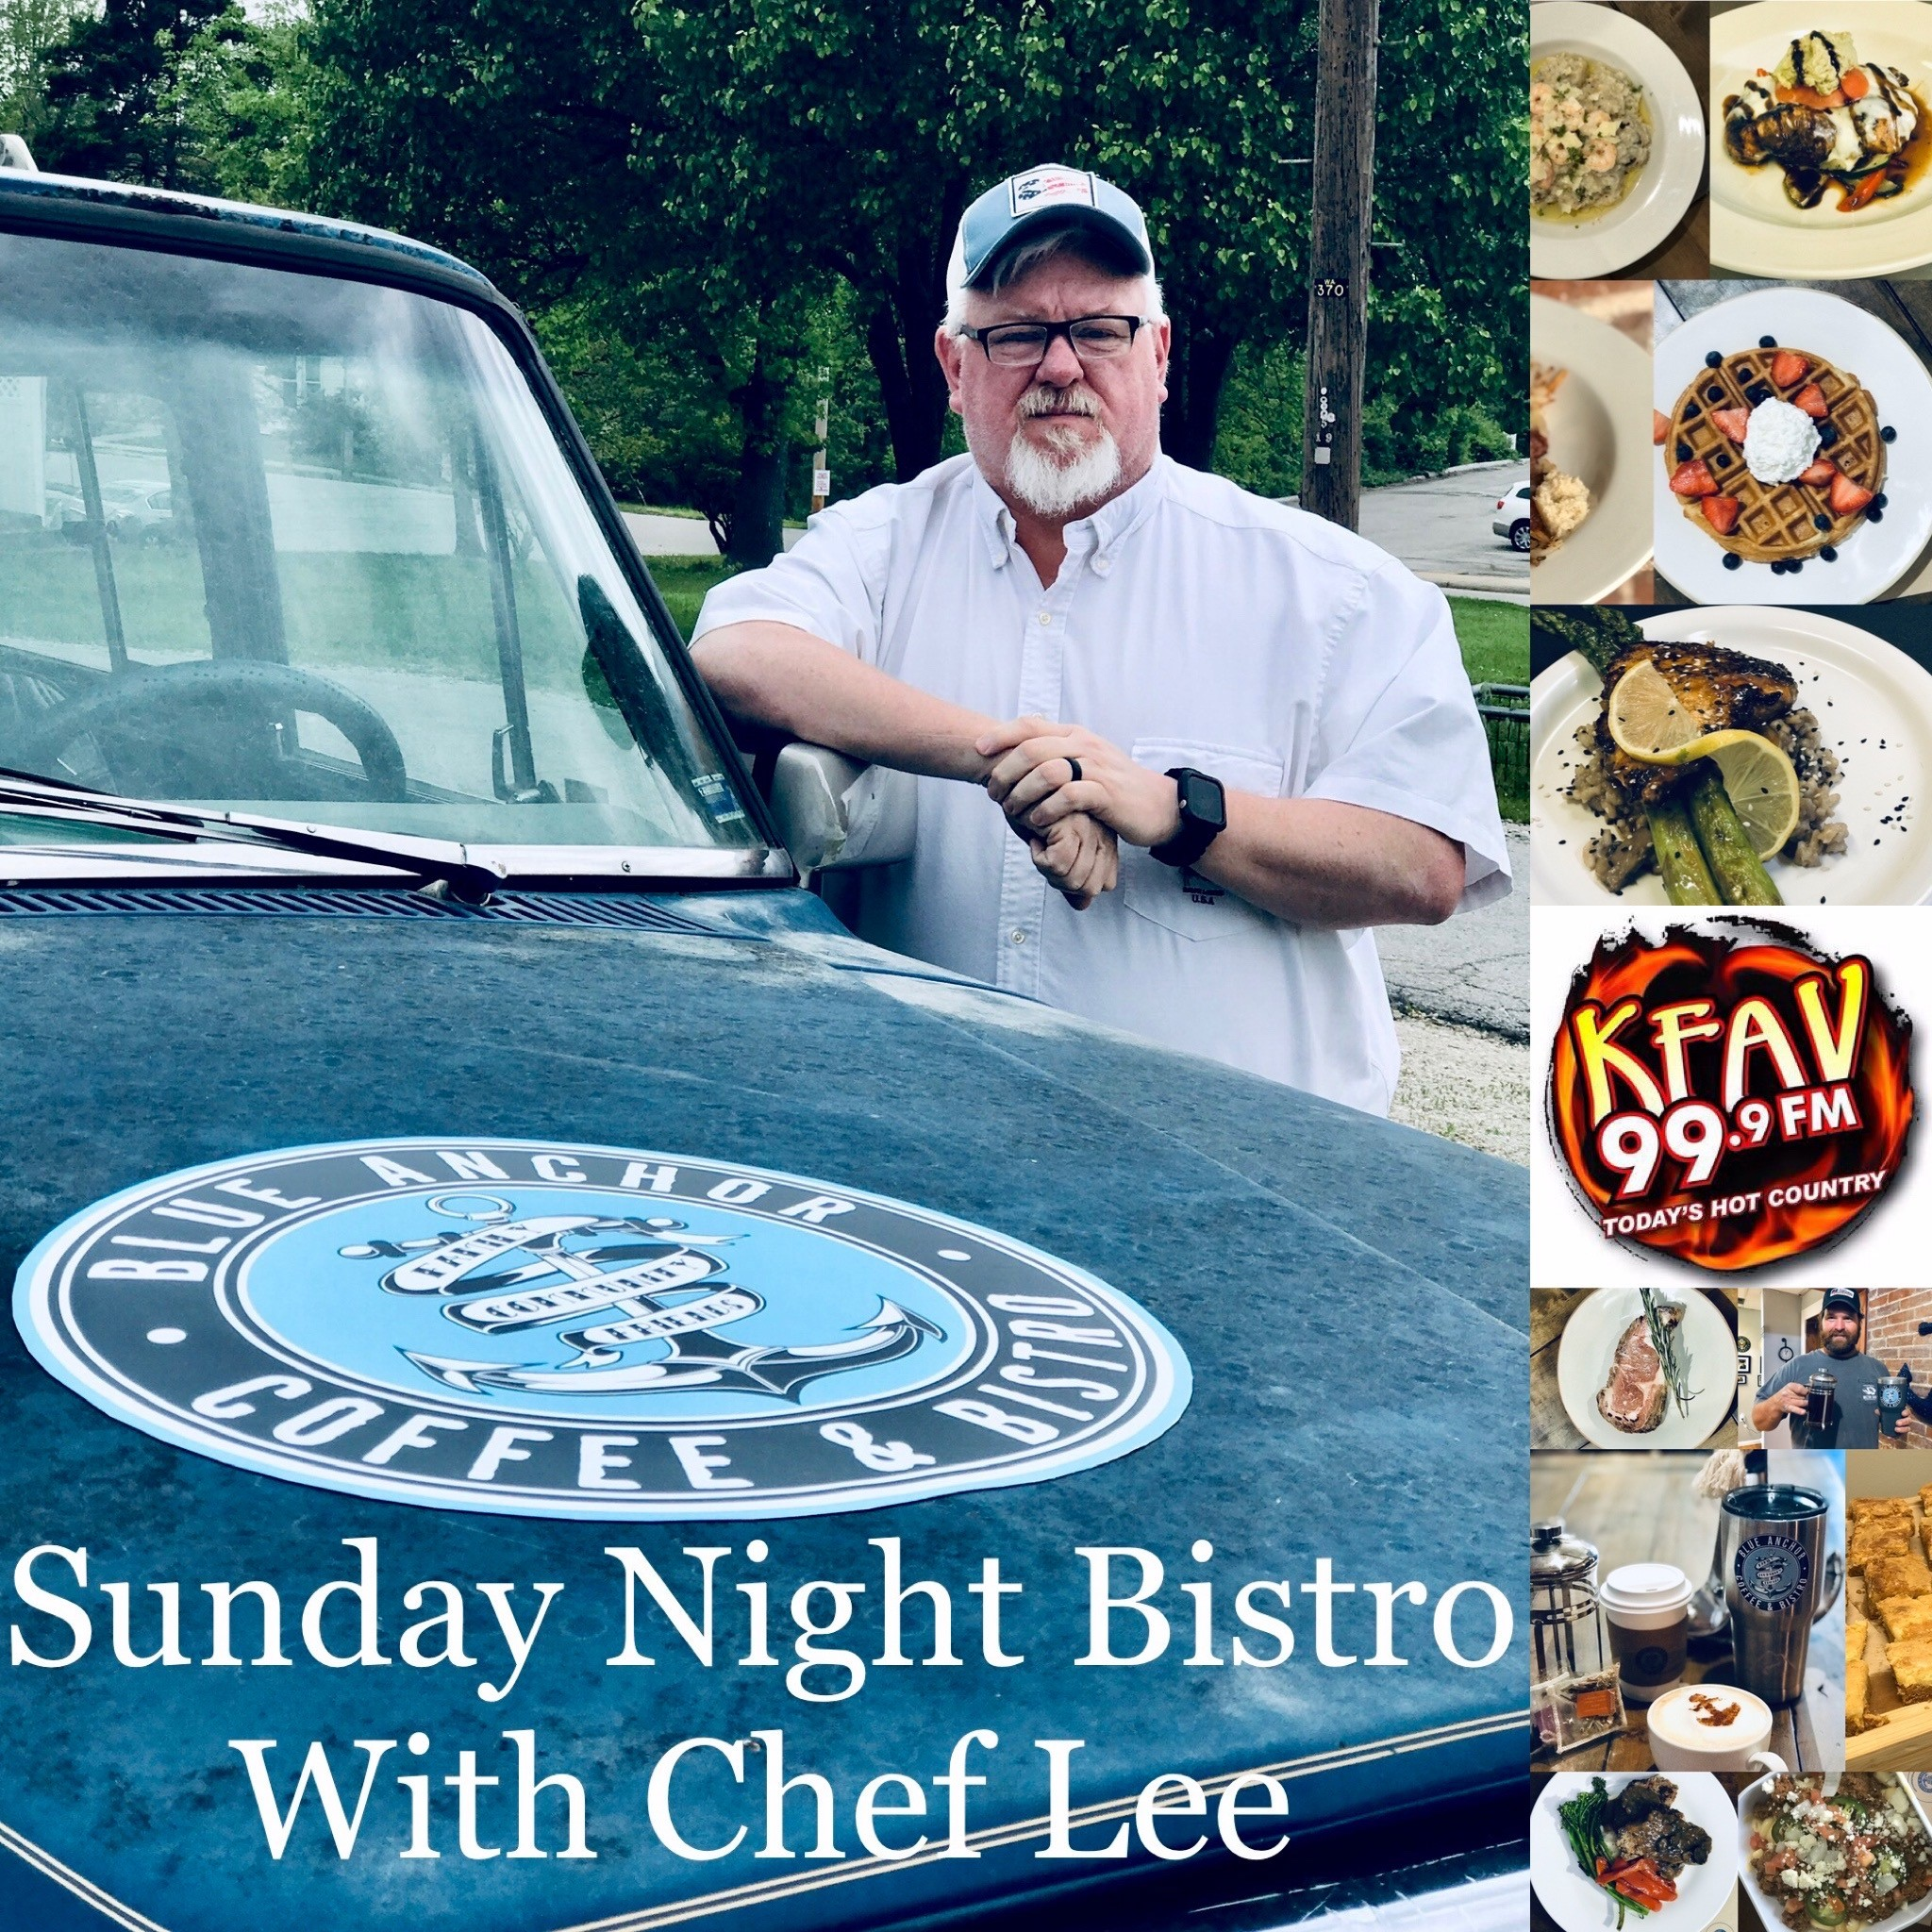 Sunday Night Bistro with Chef Lee show art